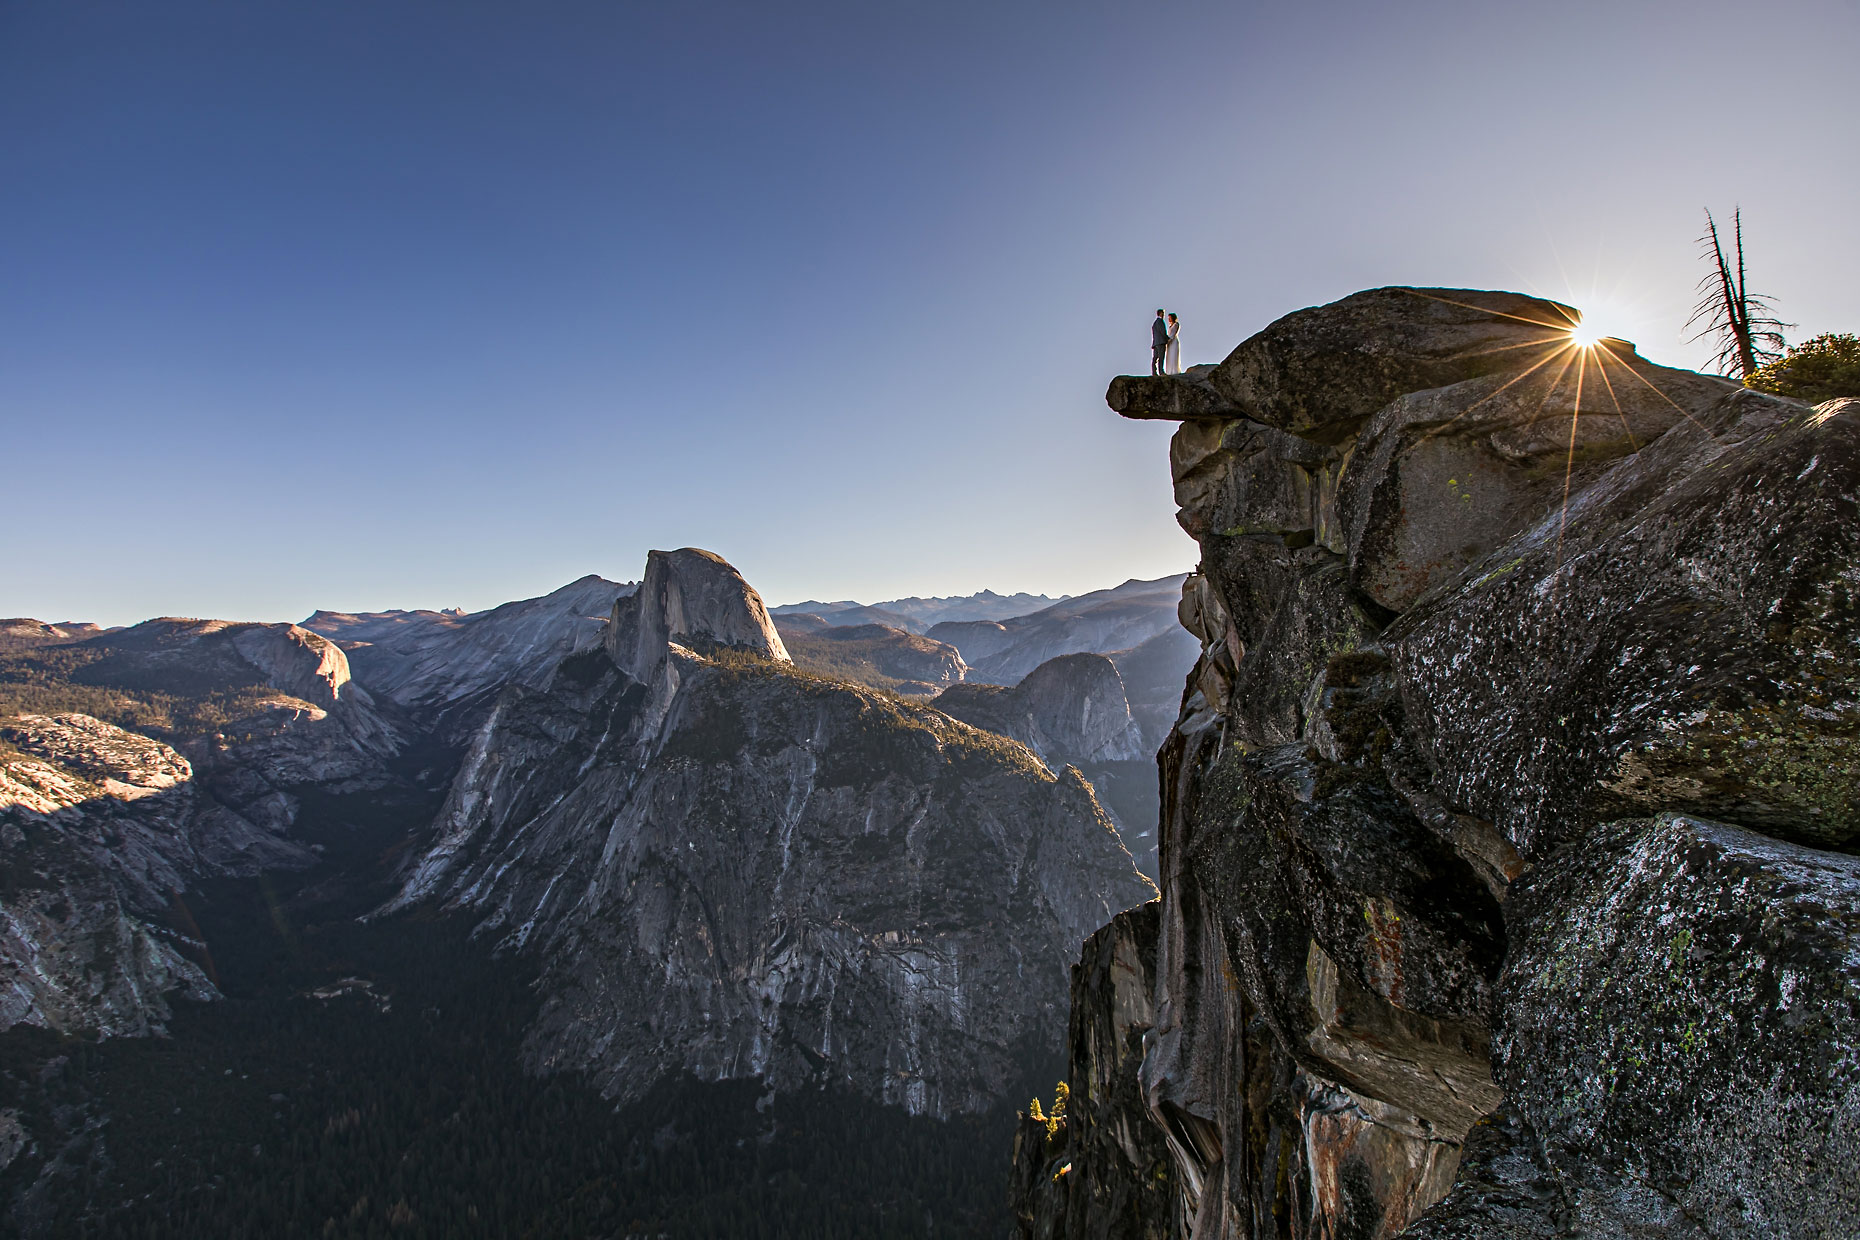 Glacier Point adventure elopement photographer in Yosemite.